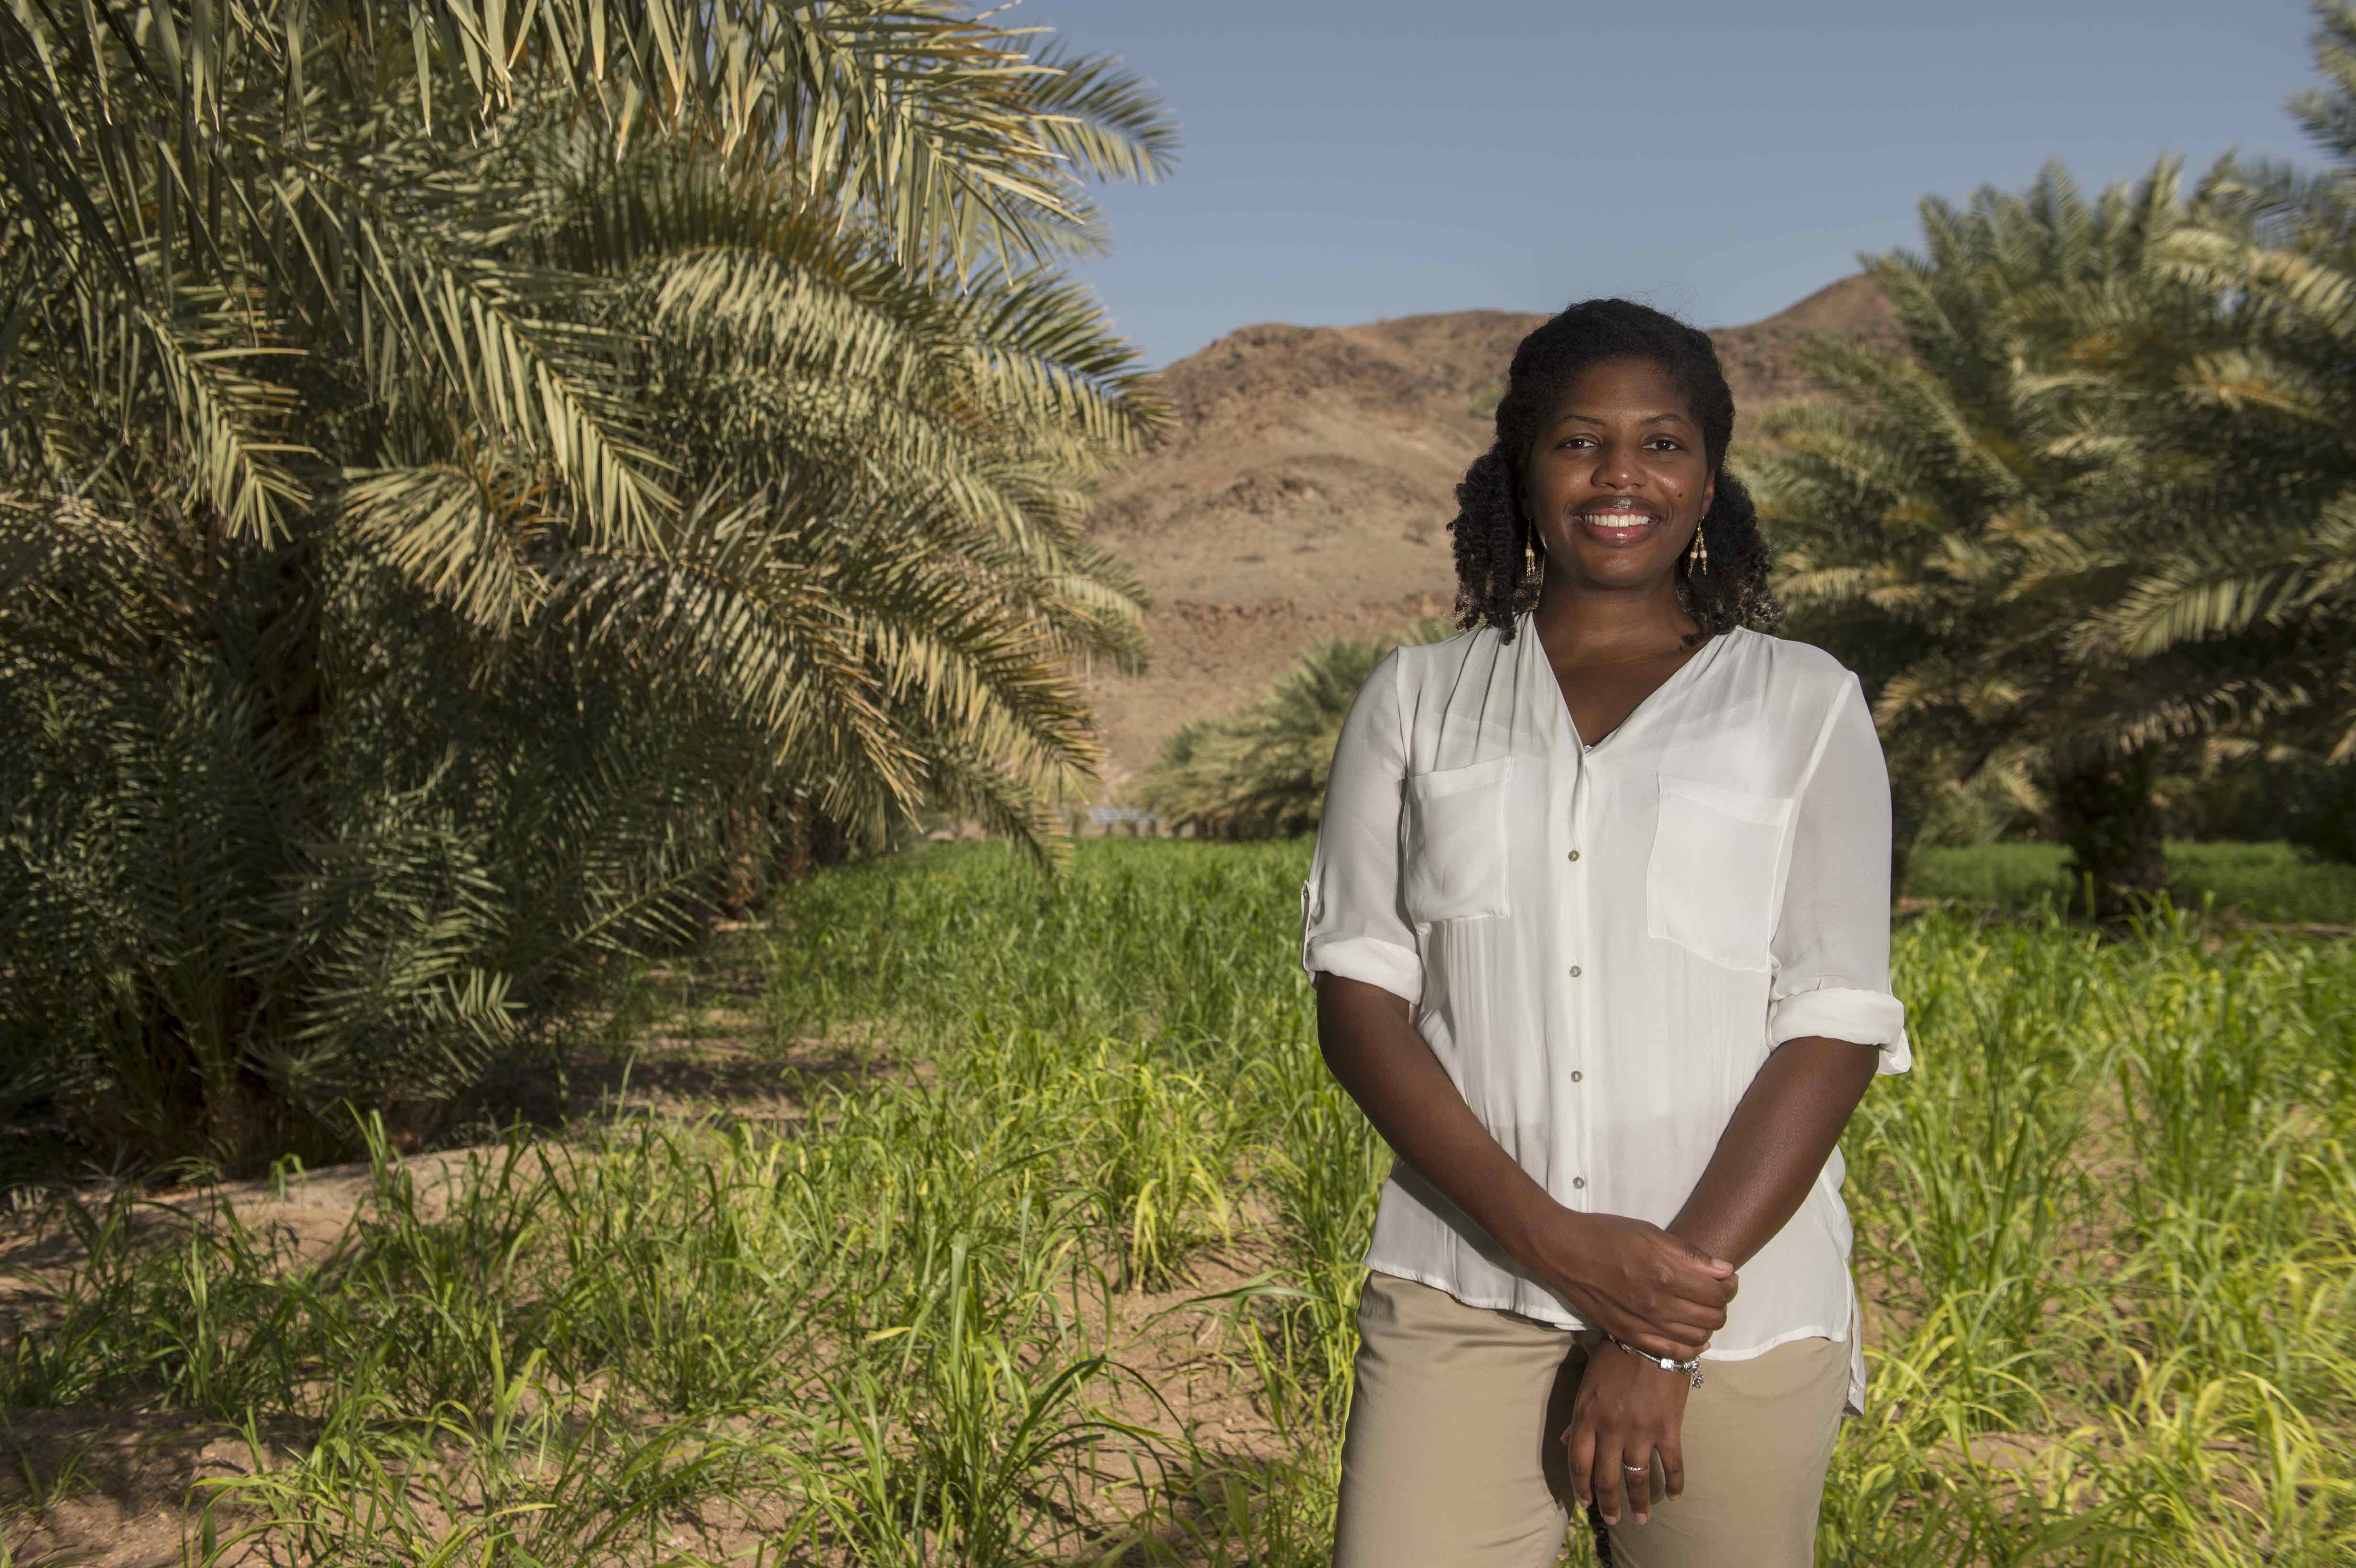 Diverse young woman stands in a desert landscape